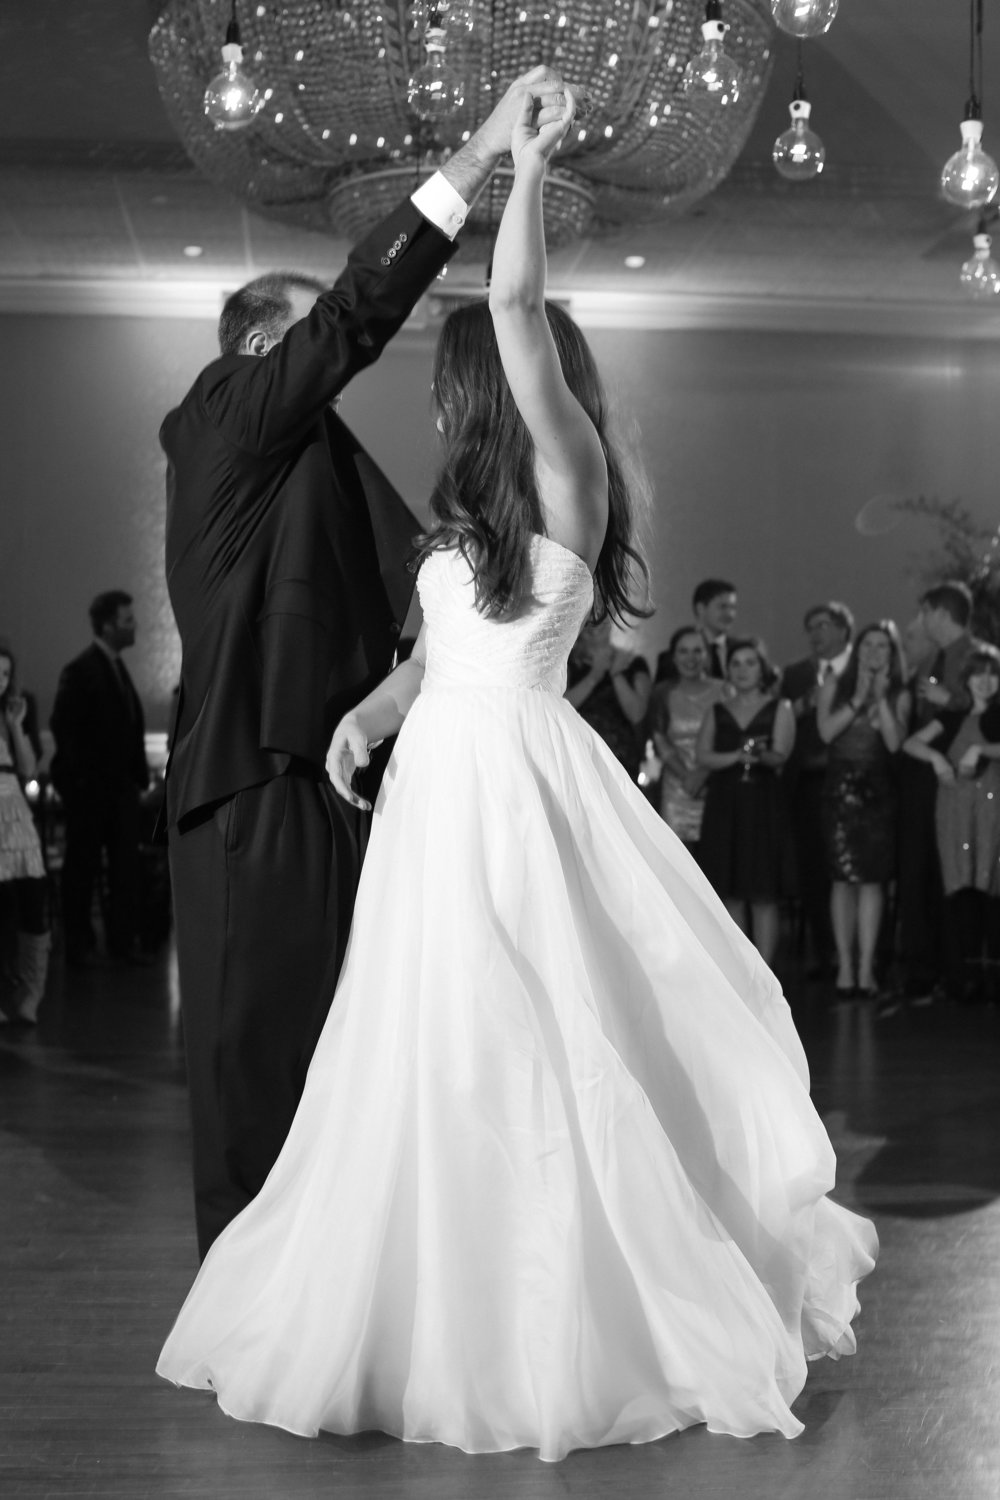 Aaron_Snow_Photography_Dick-Jordan_Wedding_ReceptionCandids.037.jpg